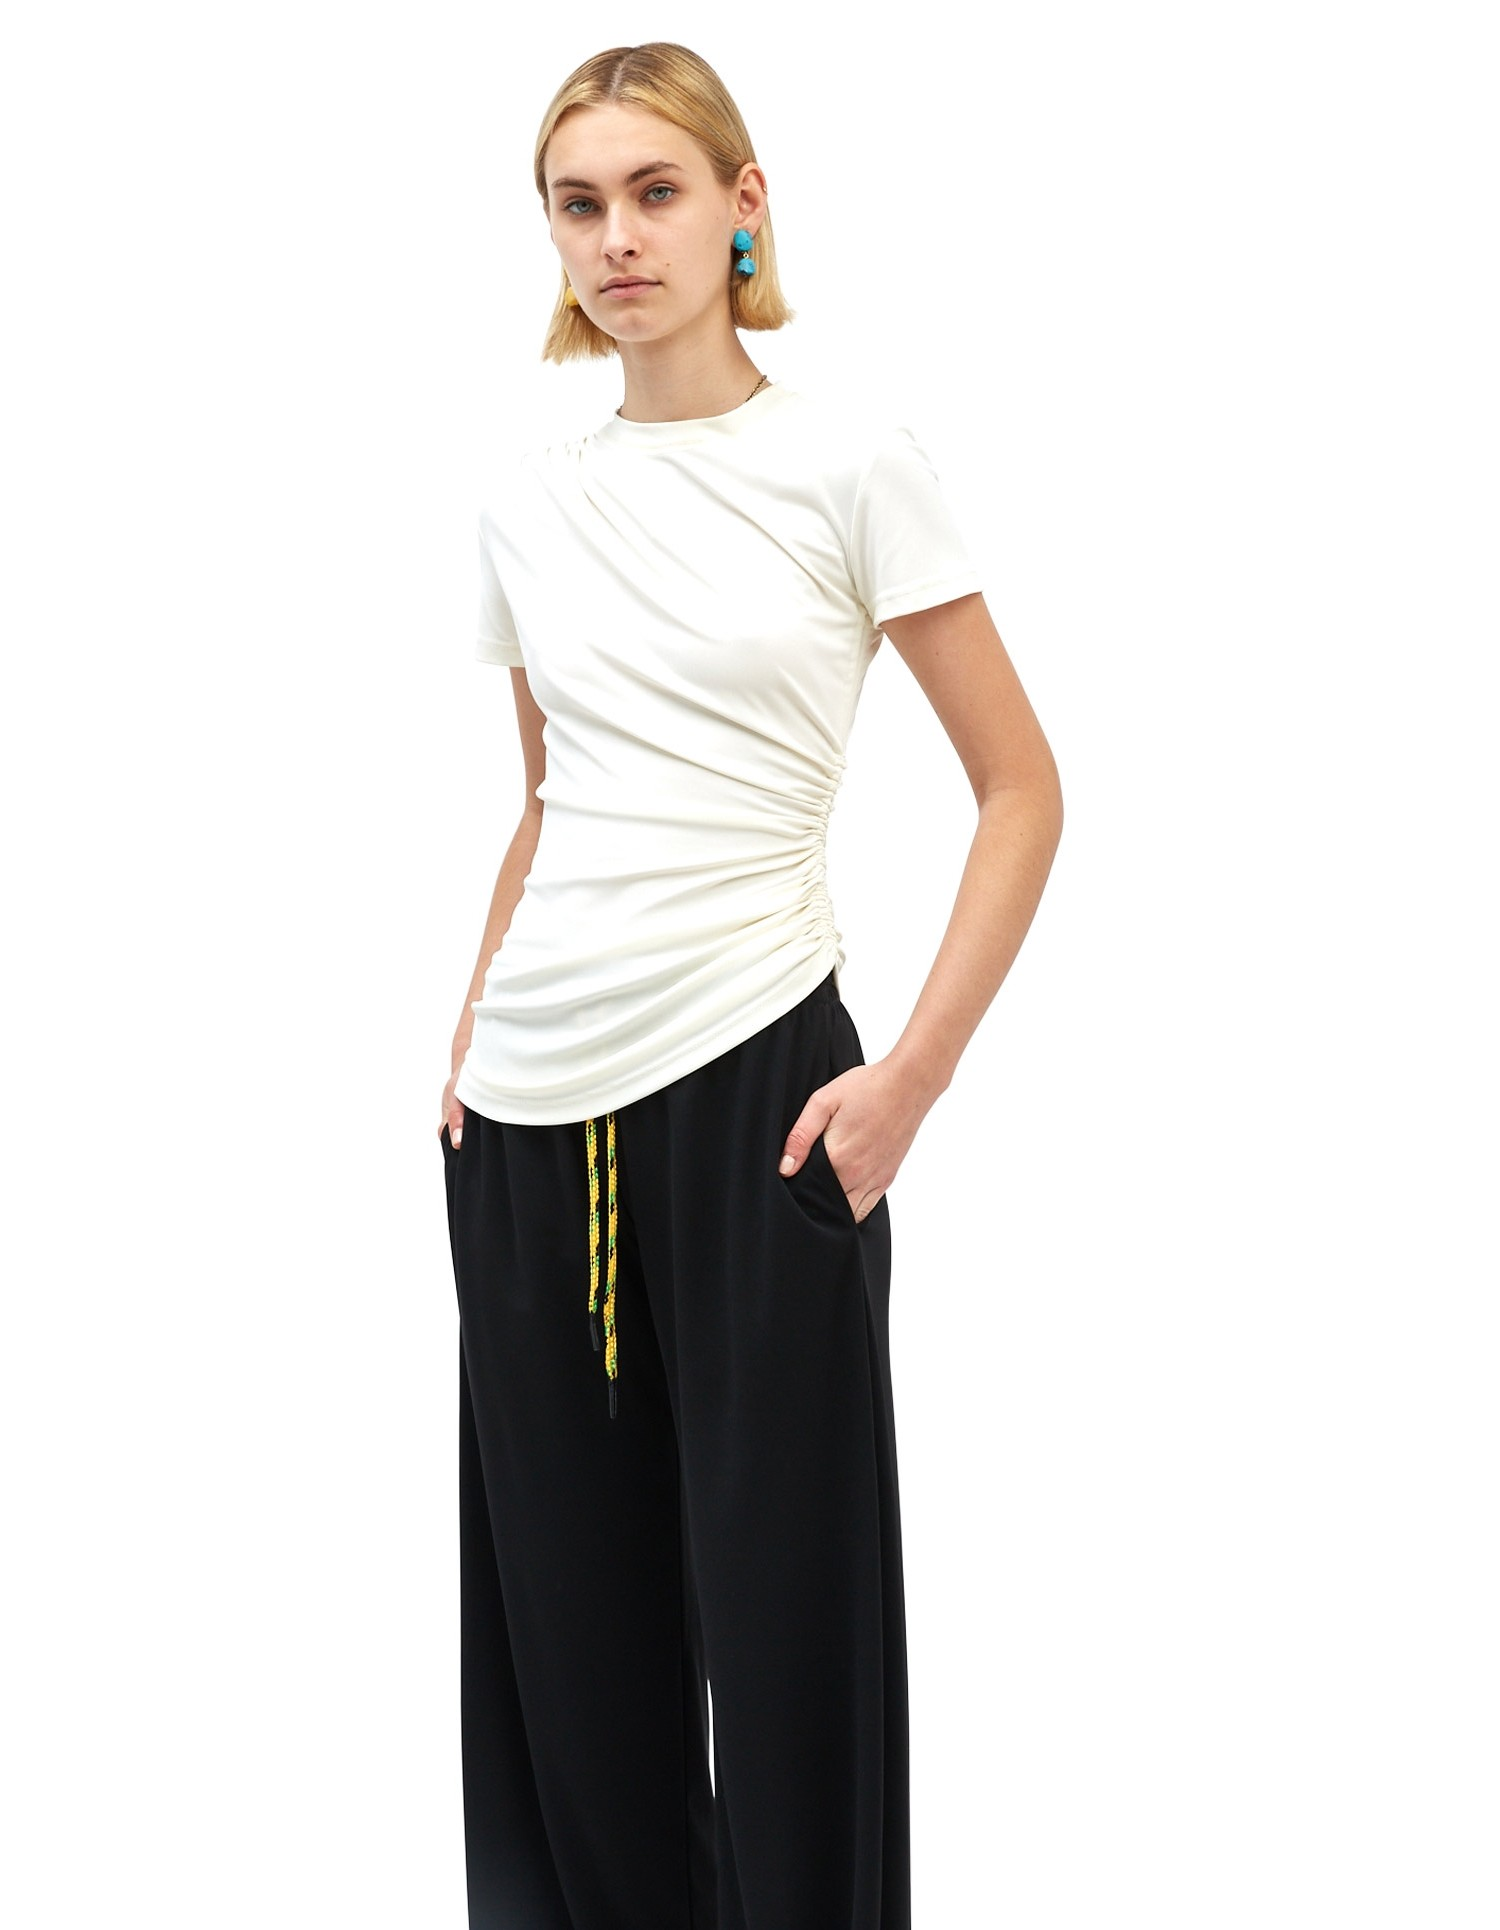 MONSE Ruched Asymmetrical Tee in Ivory on Model Front View